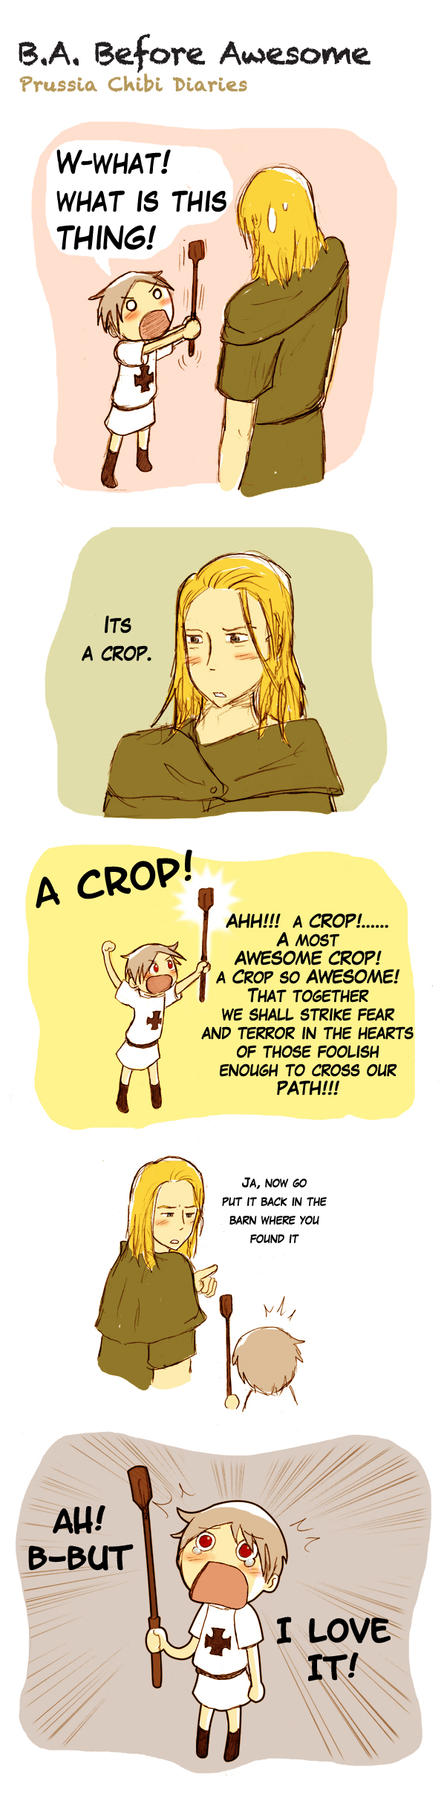 Chibi Prussia Diaries -003- by Arkham-Insanity